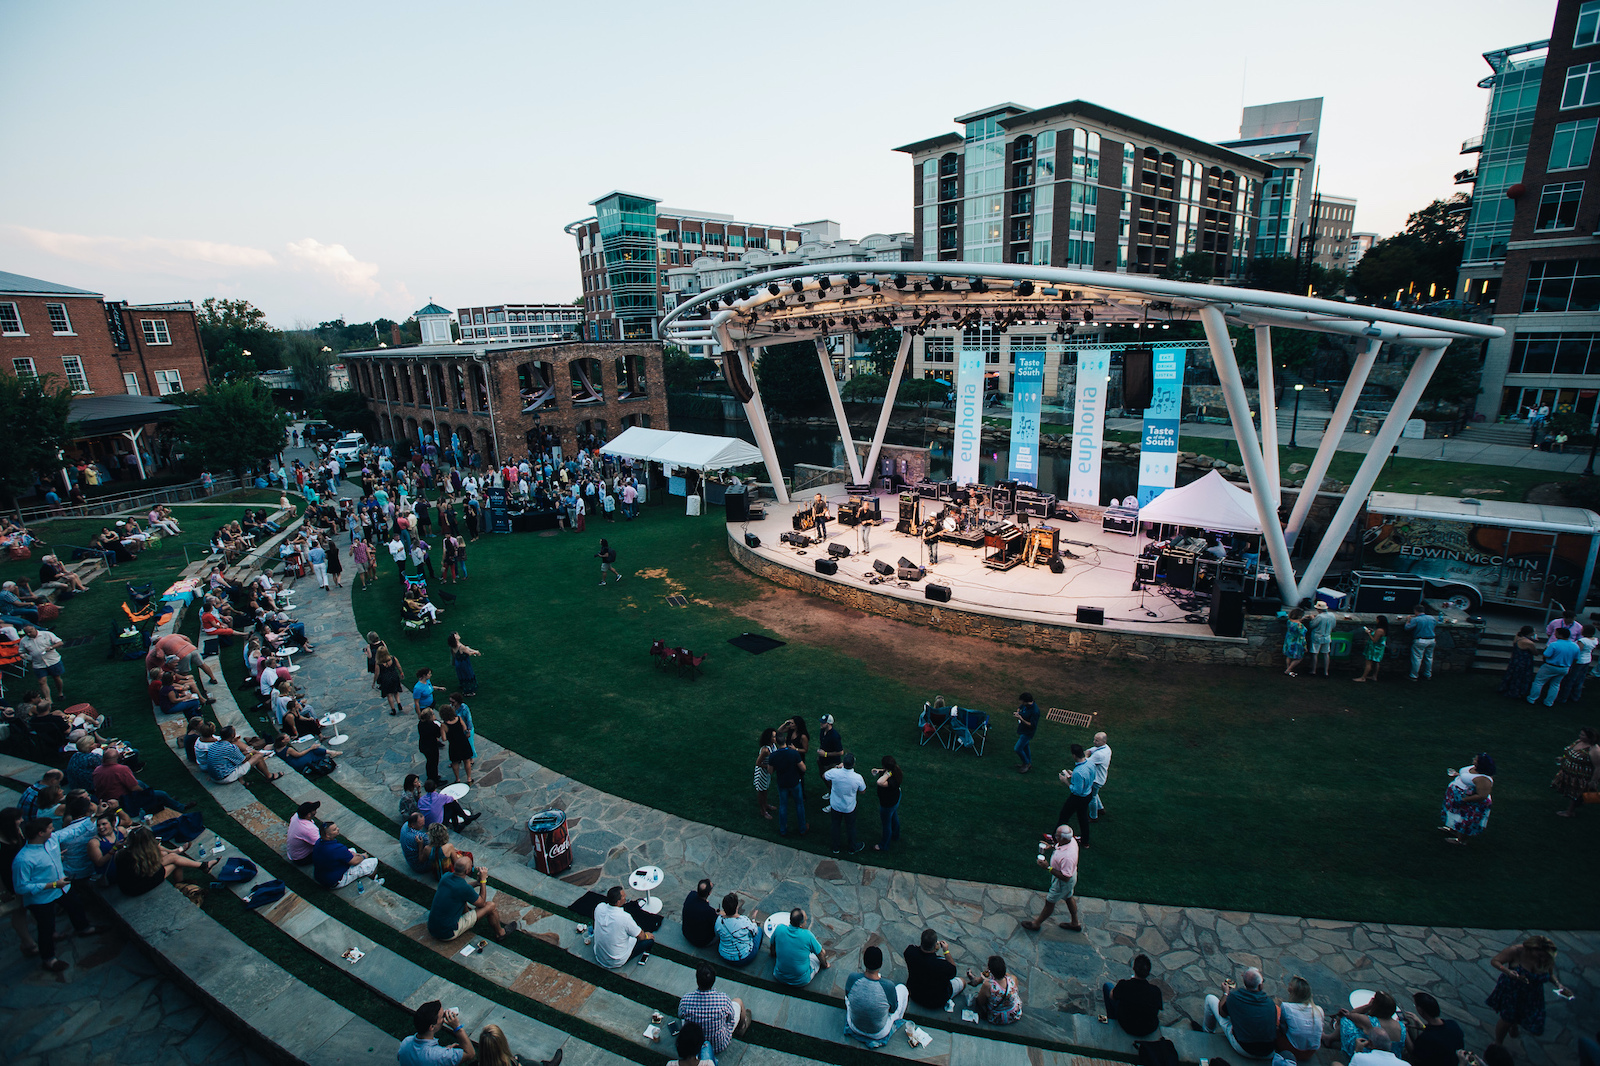 aerial view of euphoria band stage